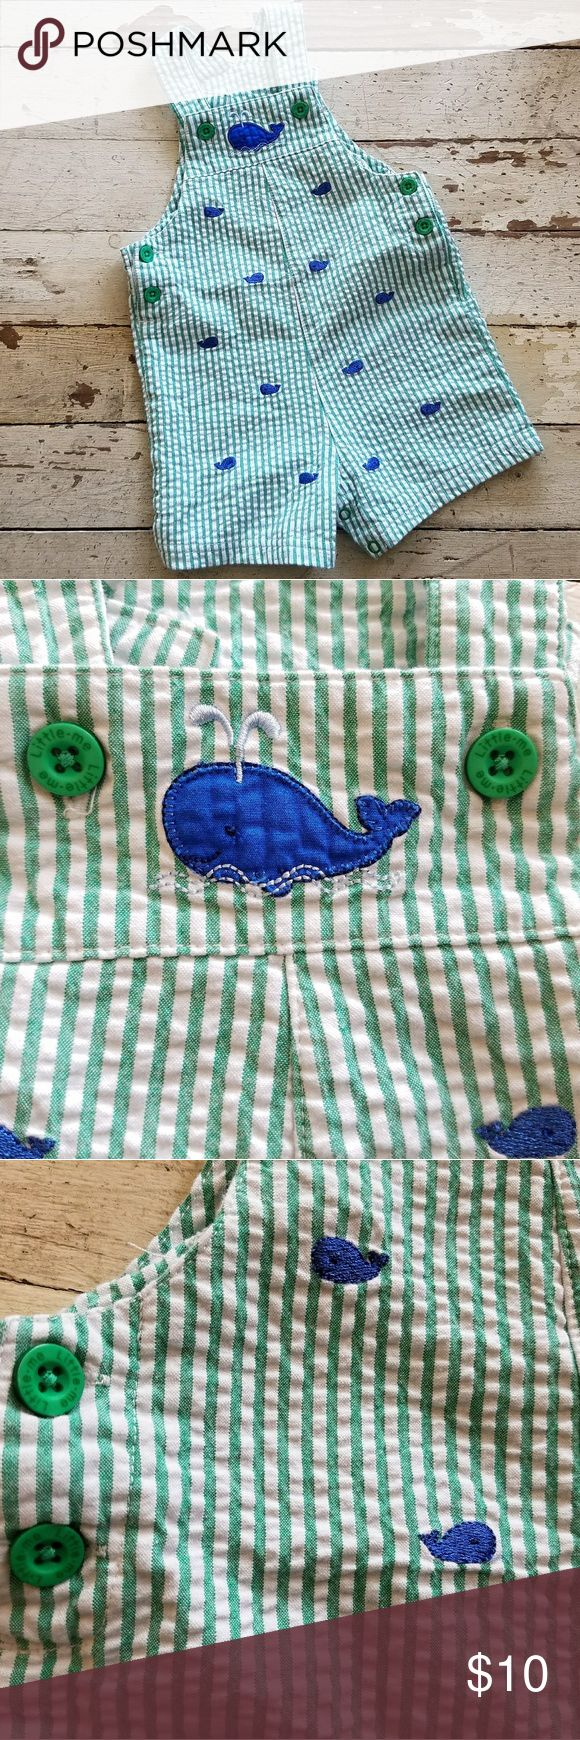 Little Me Whale Outfit This little outfit is so cute!! It is white with green stripes and blue whales. There isn't a tag, so I'm not sure on the size, but I'd say 6-12 months or so. This could be way off since my only reference is my nephews, who were both tiny giants. All buttons are functioning and there are 4 snaps closing the bottom. Little Me One Pieces